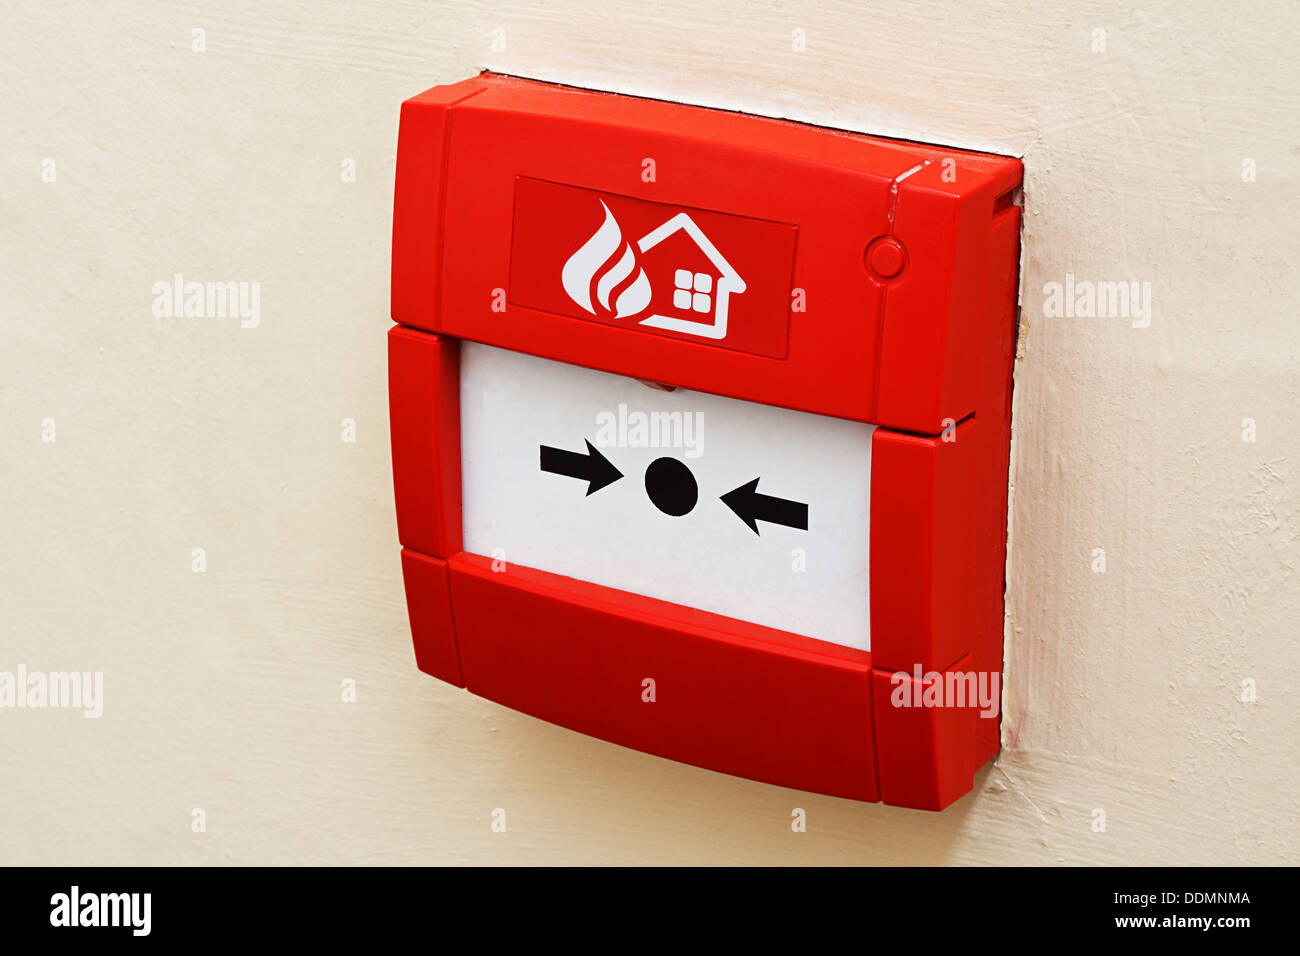 wall mounted Red fire alarm button used to activate warning systems in buildings - Stock Image